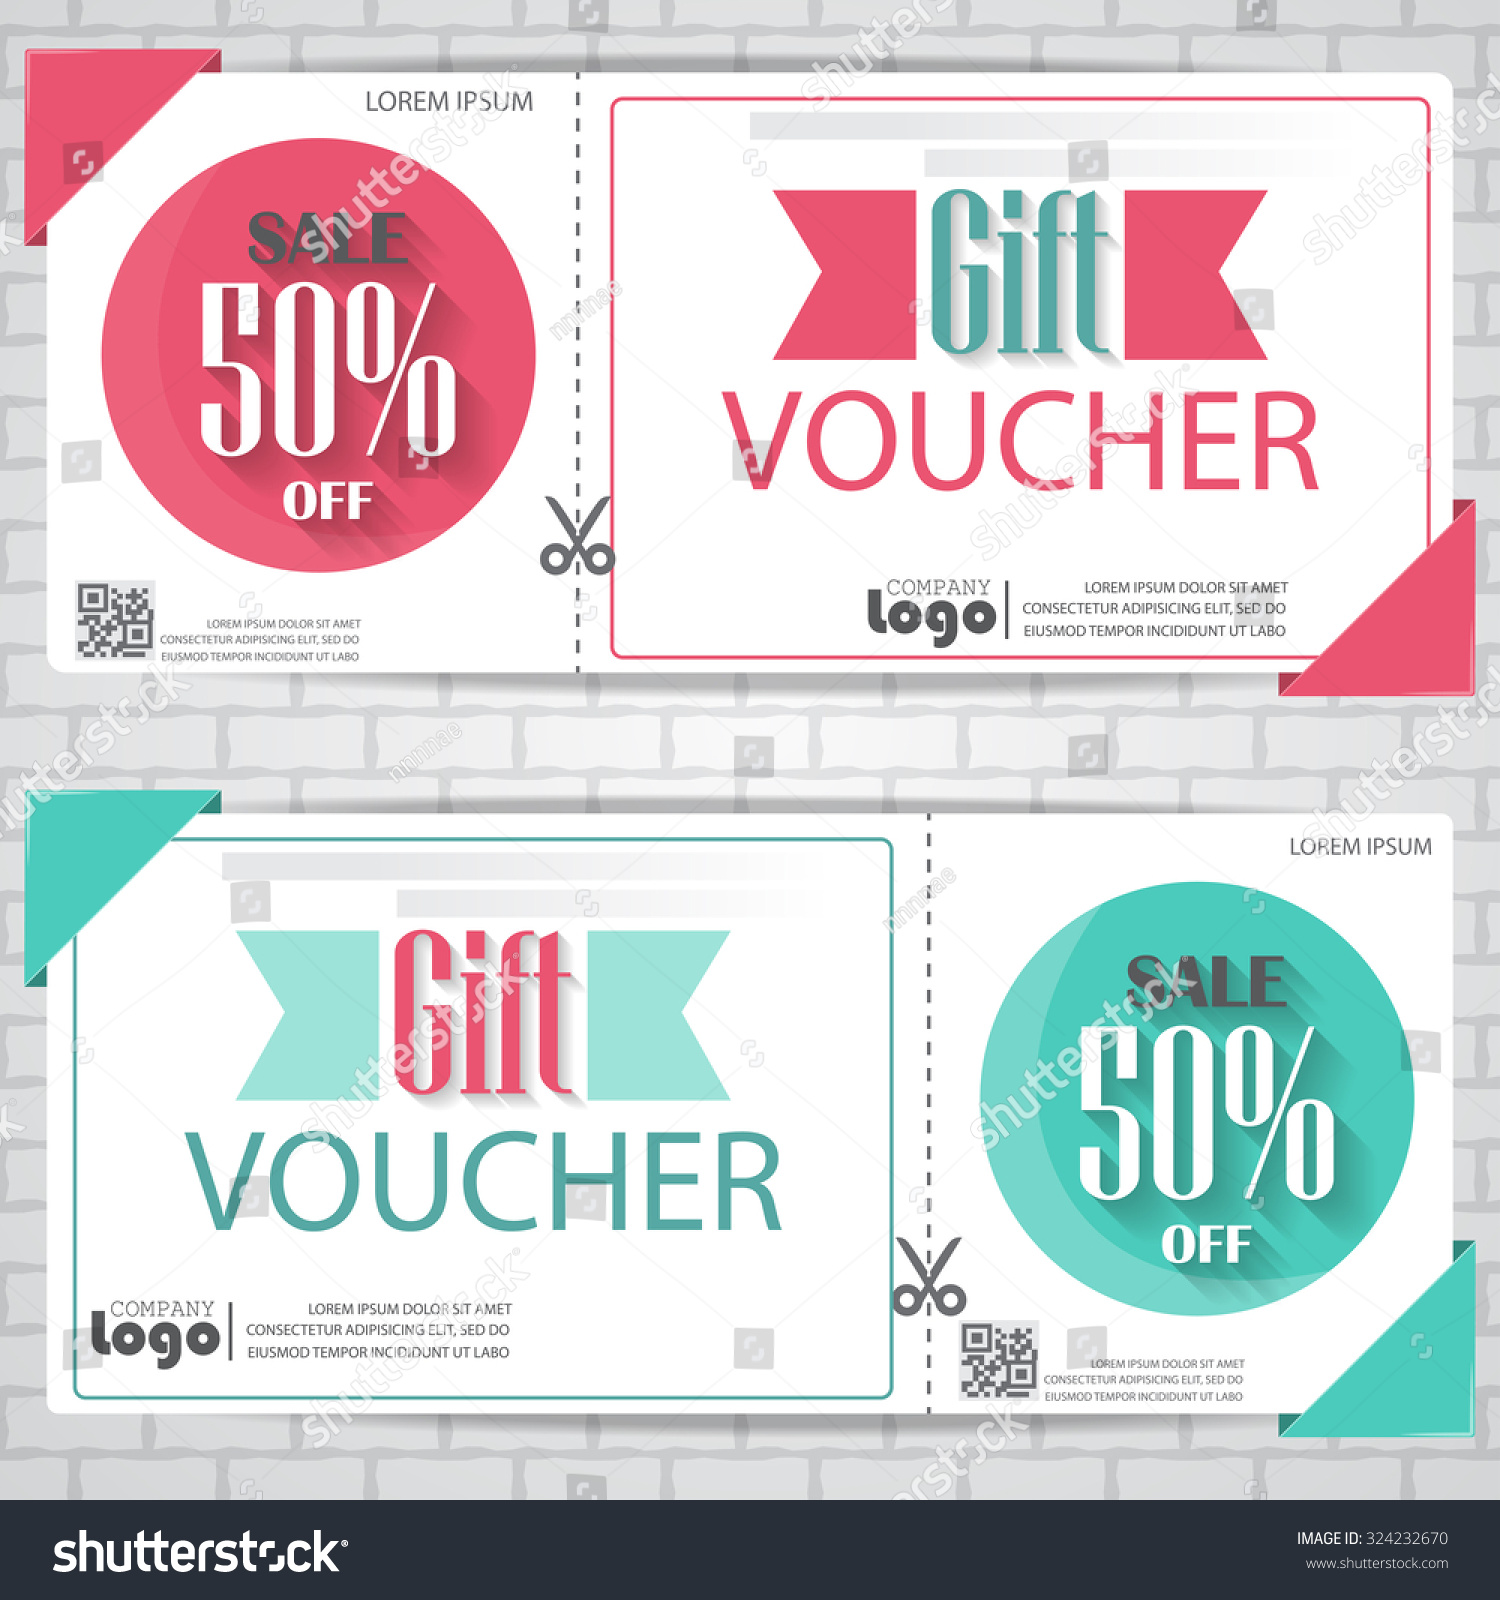 Template gift voucher purchase order sample format airline gift certificate template stock vector gift voucher certificate coupon template cute and modern style can yadclub Gallery